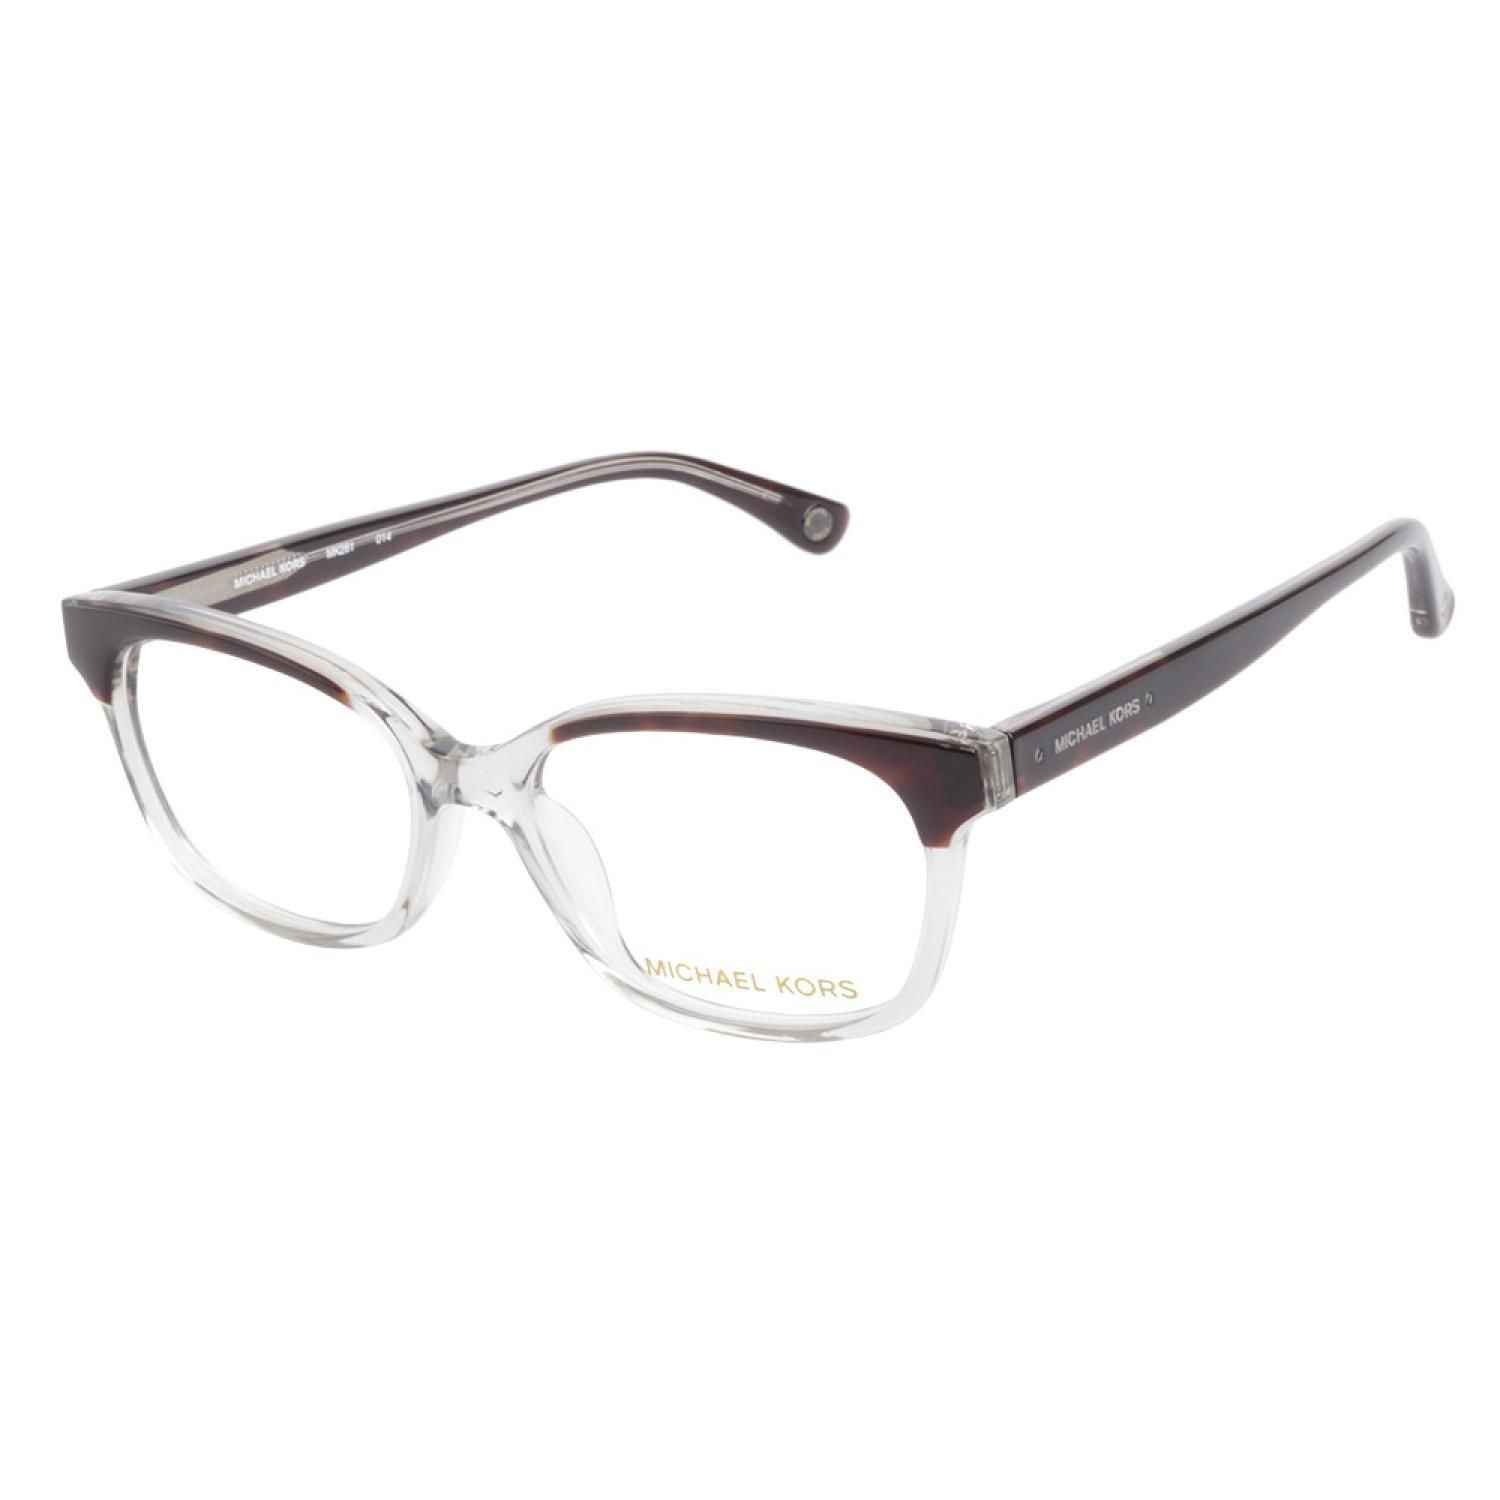 e3fa98b2e18 Michael Kors MK261 014 Smoke eyeglasses are fun and fashionable. This  cateye style frame has a transparent crystal grey finish with rich havana  highlighted ...